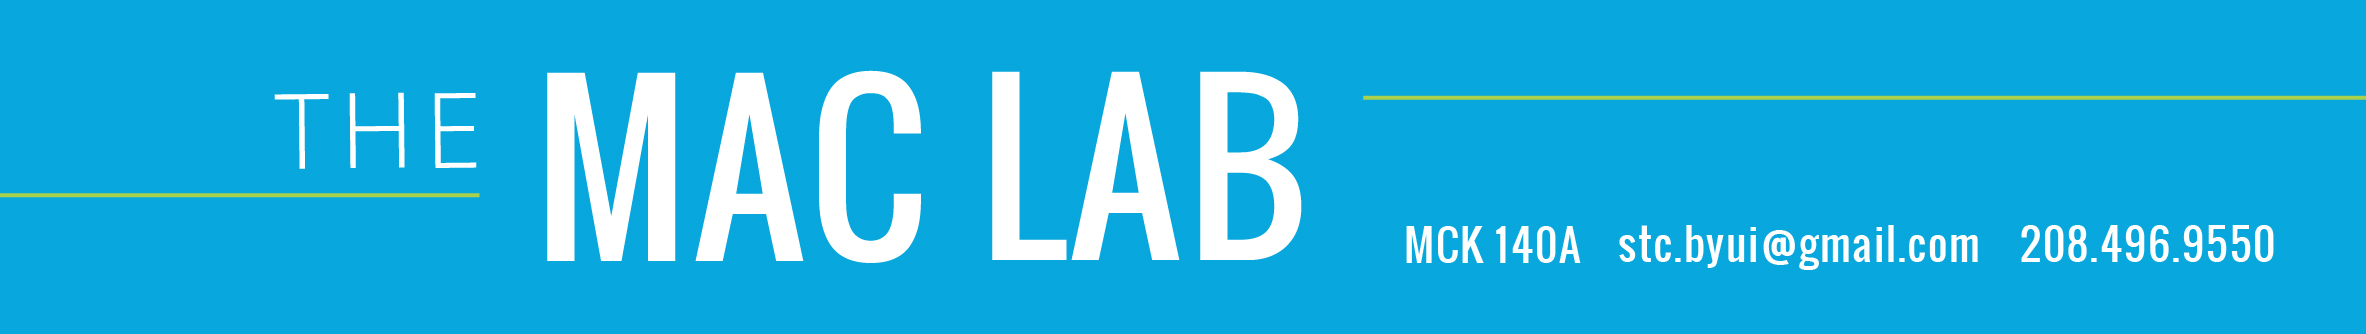 Mac Lab header